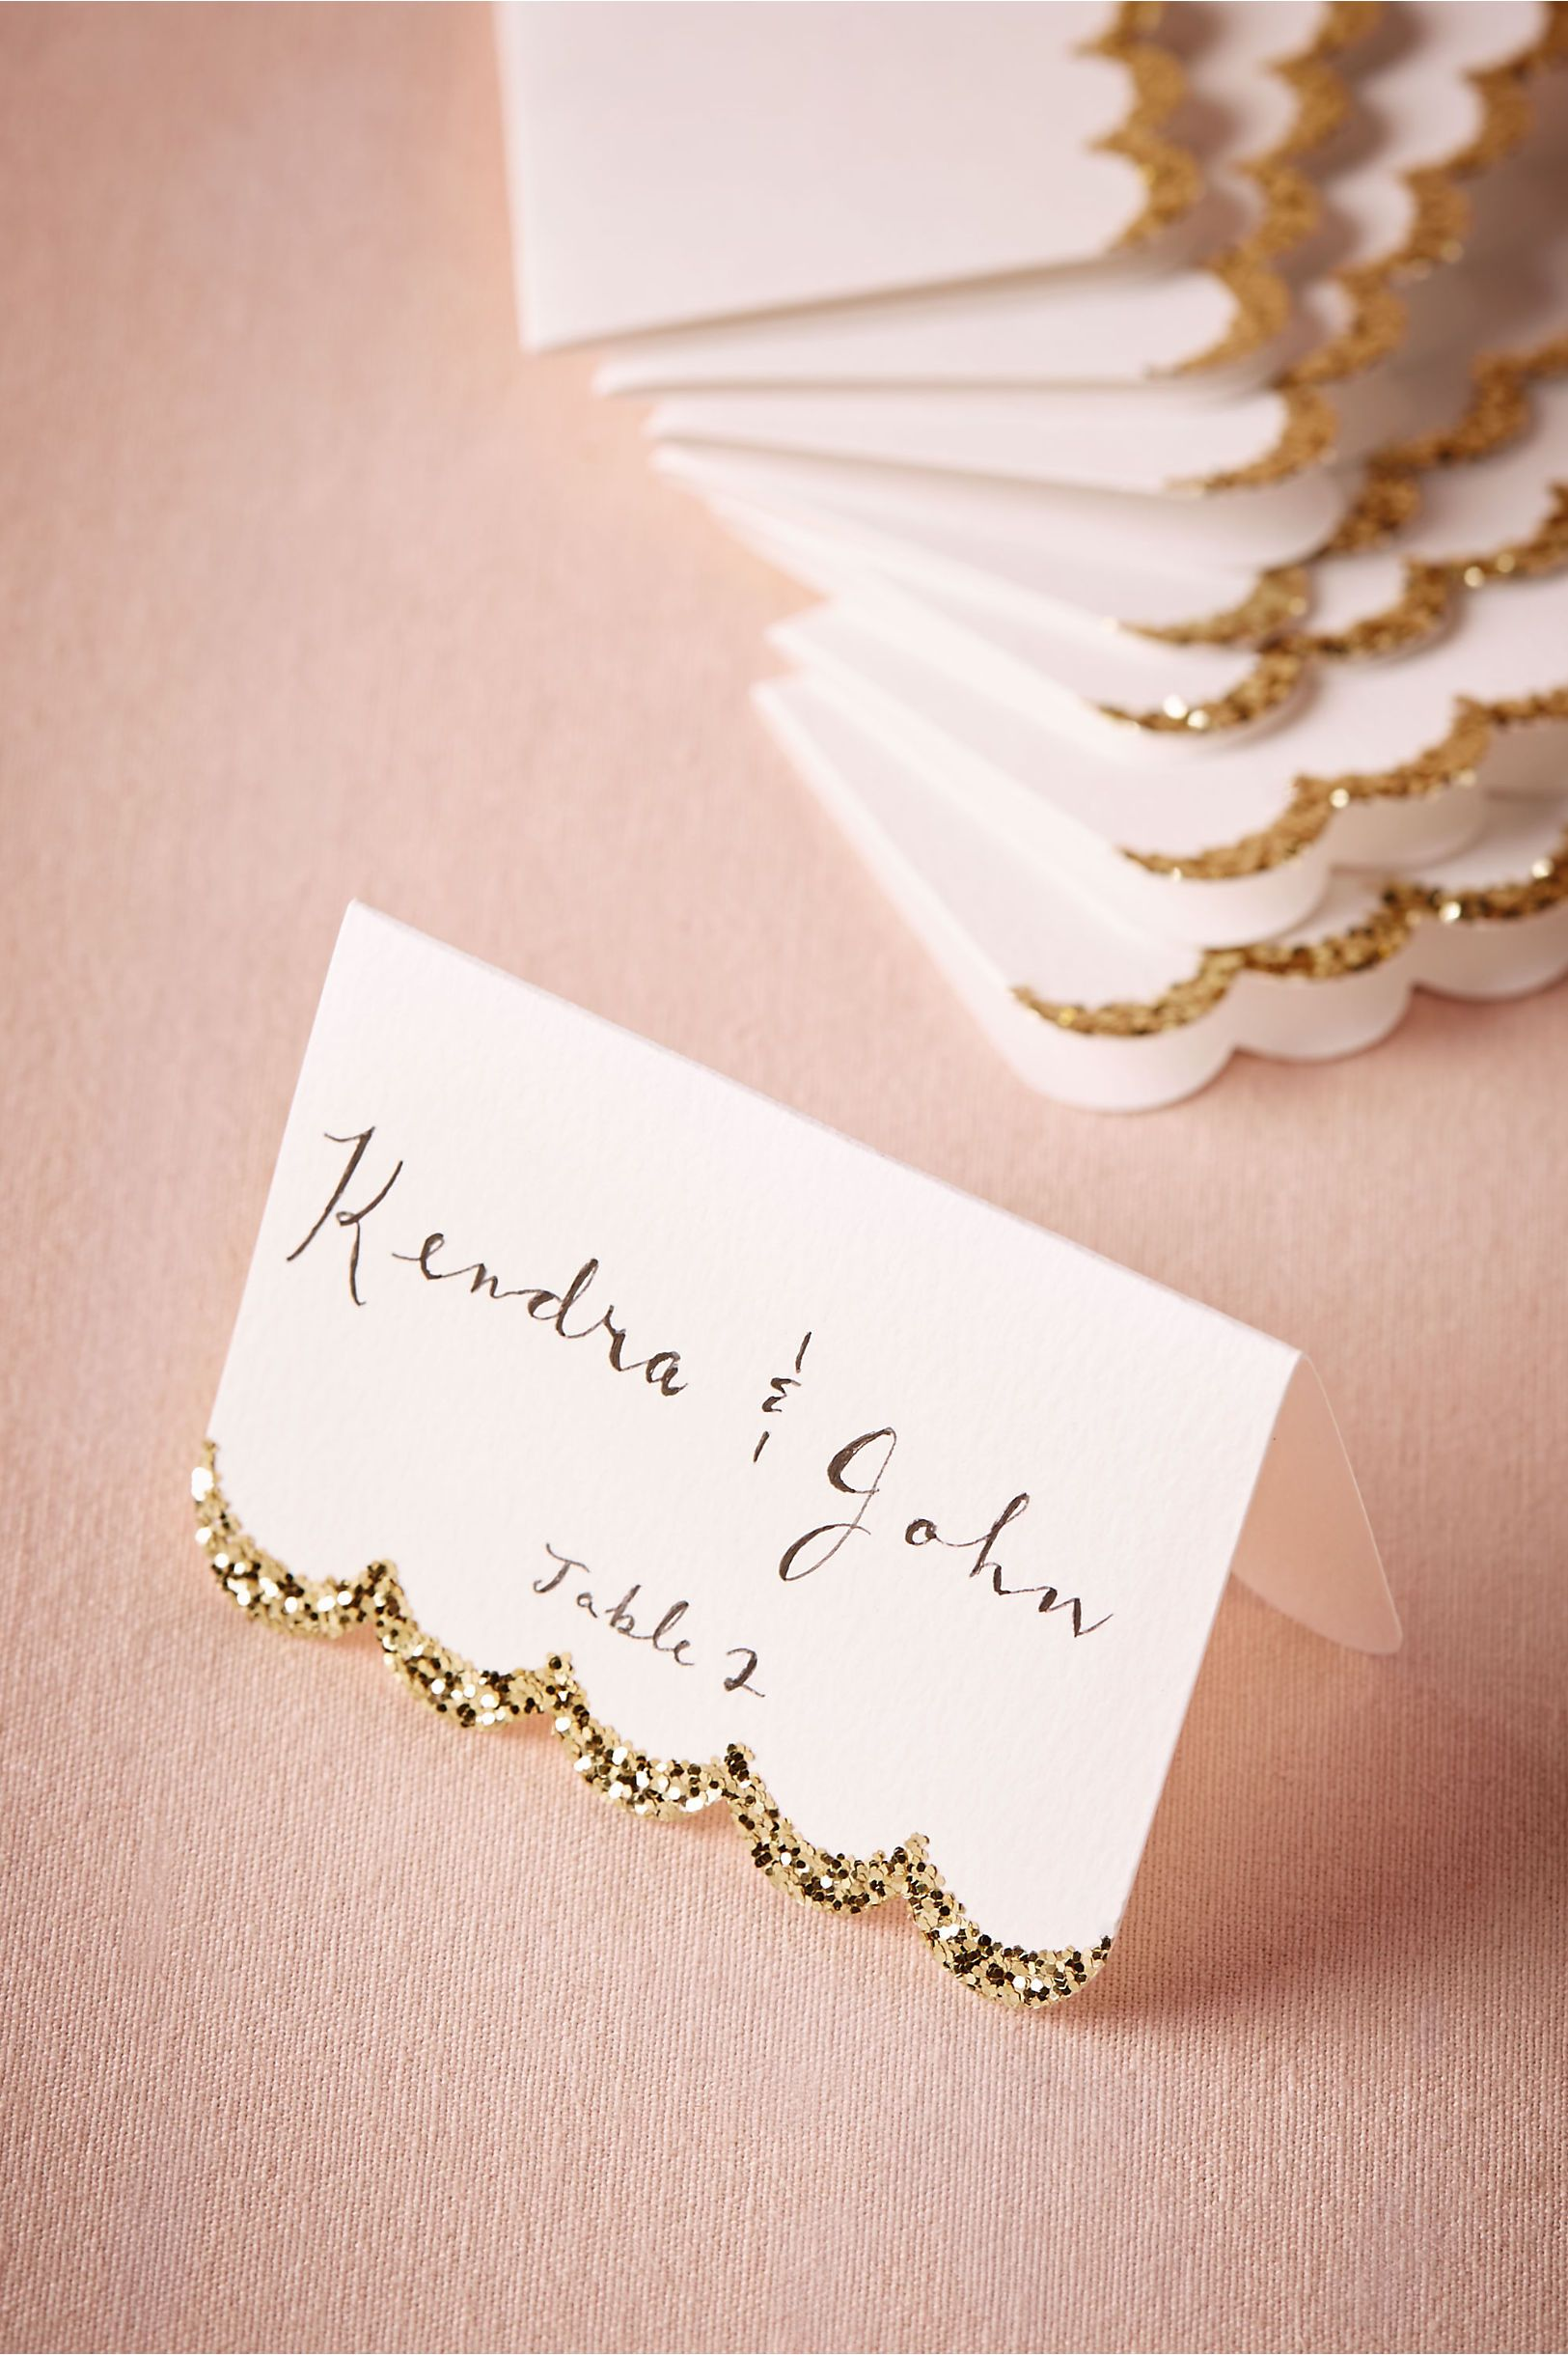 BHLDN Glitter Dipped Place Cards 10 in Décor View All Décor at